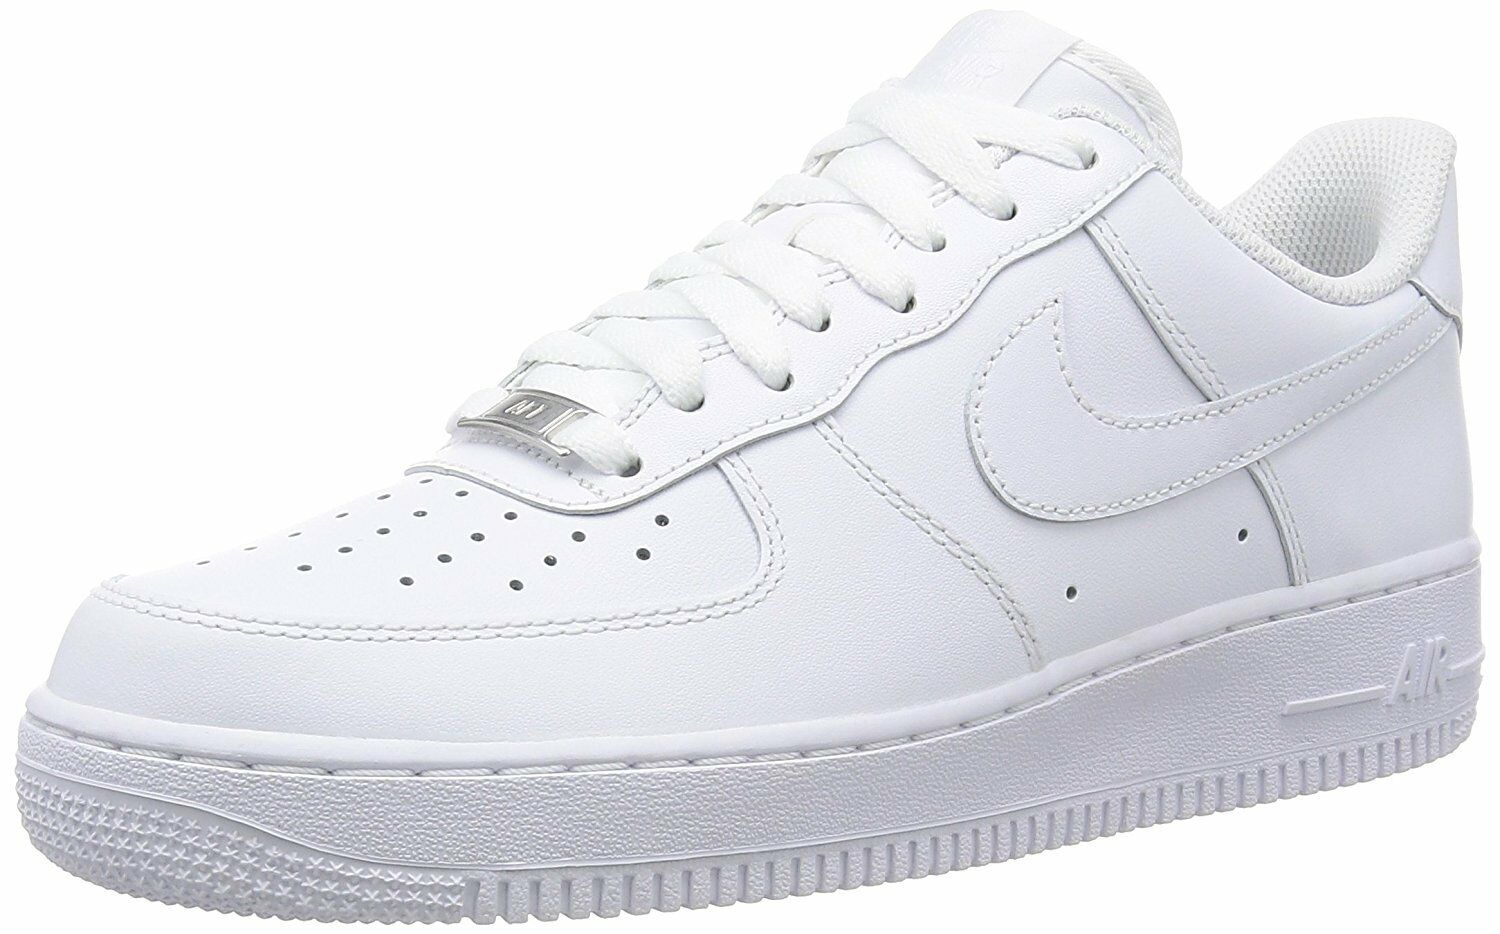 Nike Air Force 1 07' Low shoes White 315122-111 -  9 Men's Size